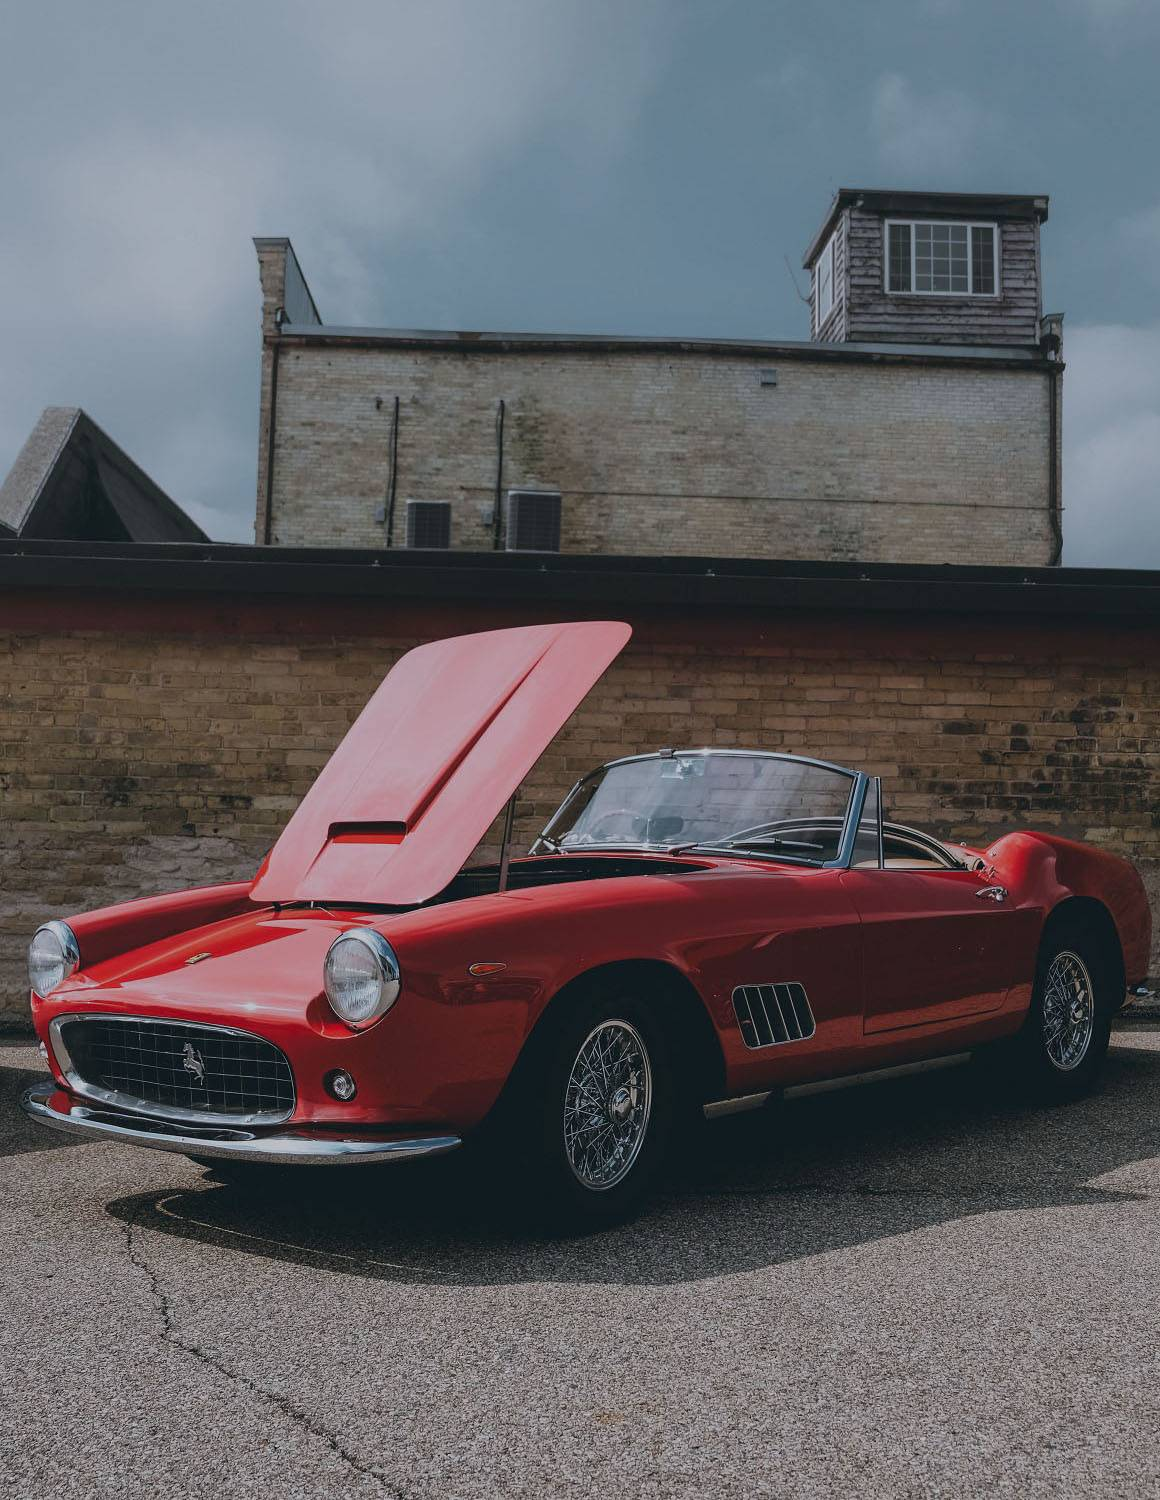 Get cheap classic car insurance today